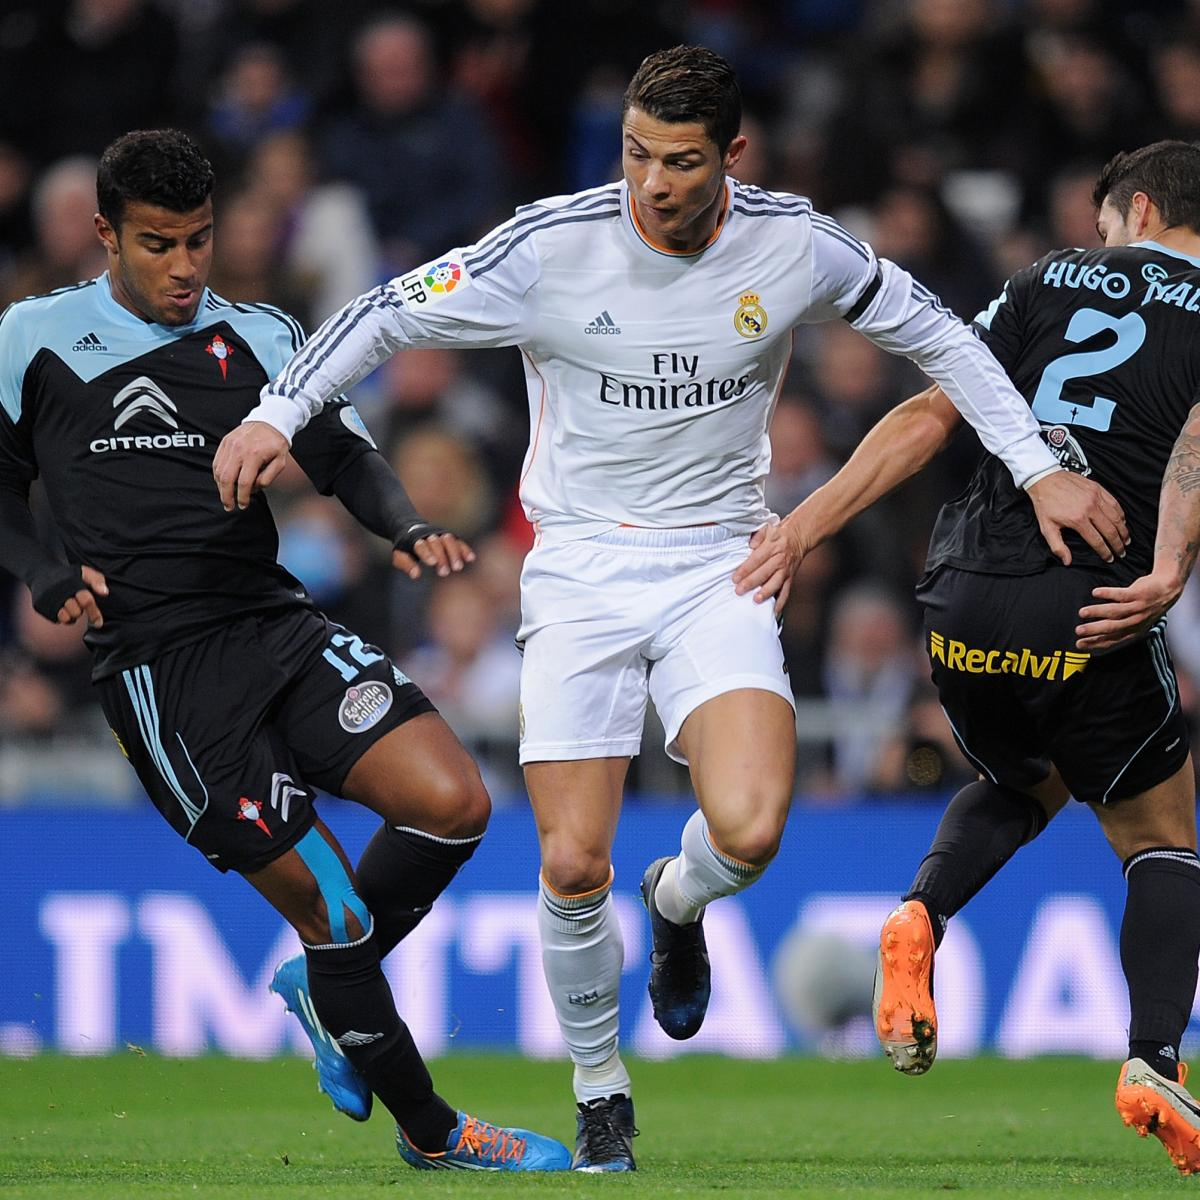 Barcelona Vs Celta Vigo In Youtube: Real Madrid Vs. Celta Vigo: 6 Things We Learned From